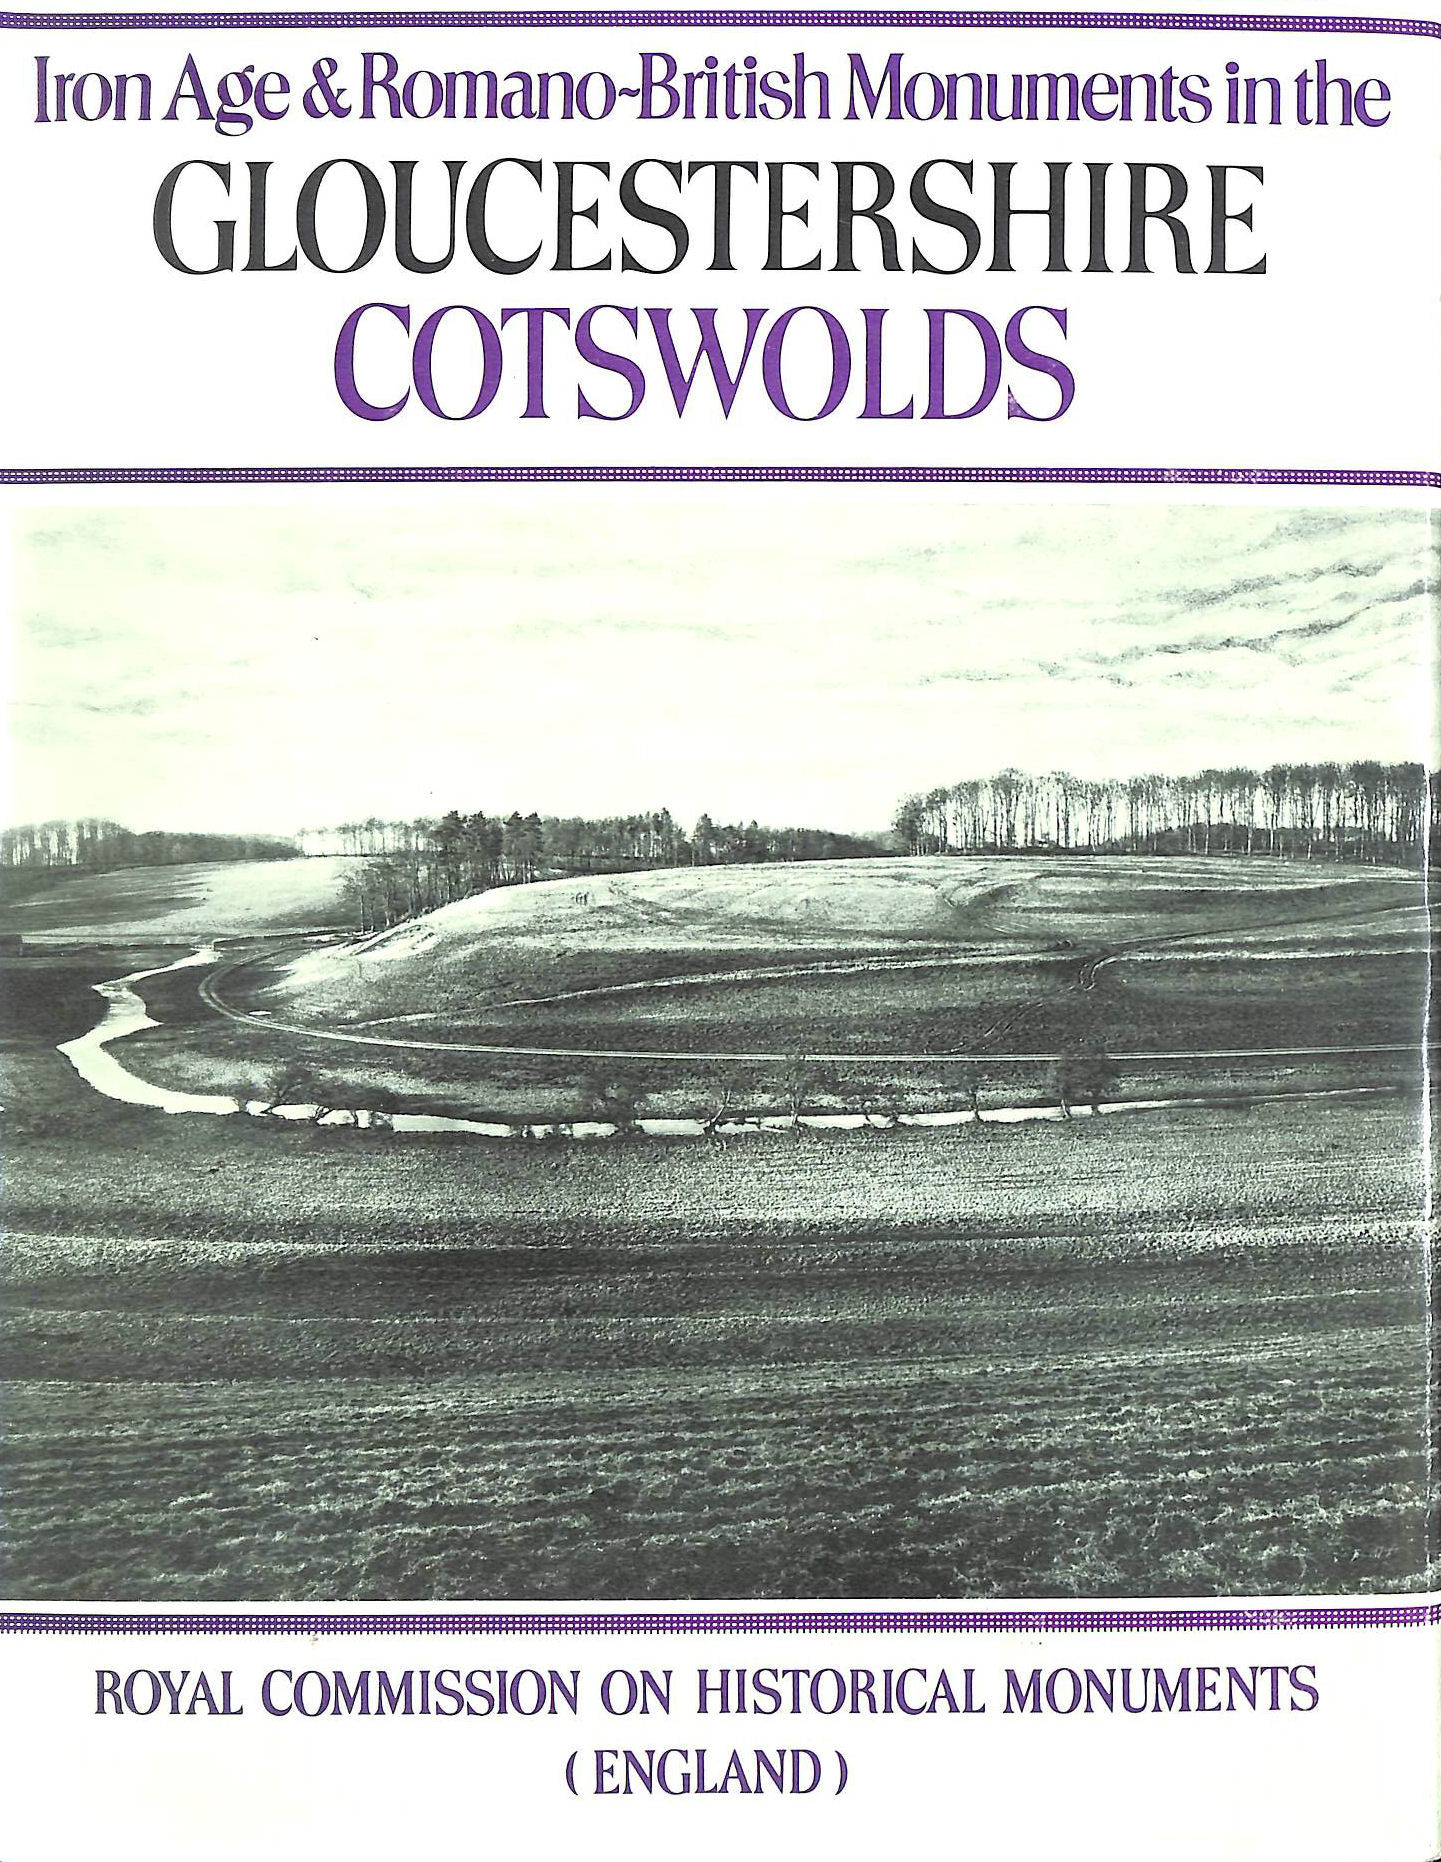 Image for Ancient and Historical Monuments in the County of Gloucester: Iron Age and Romano-British Monuments in the Gloucestershire Cotswolds v. 1